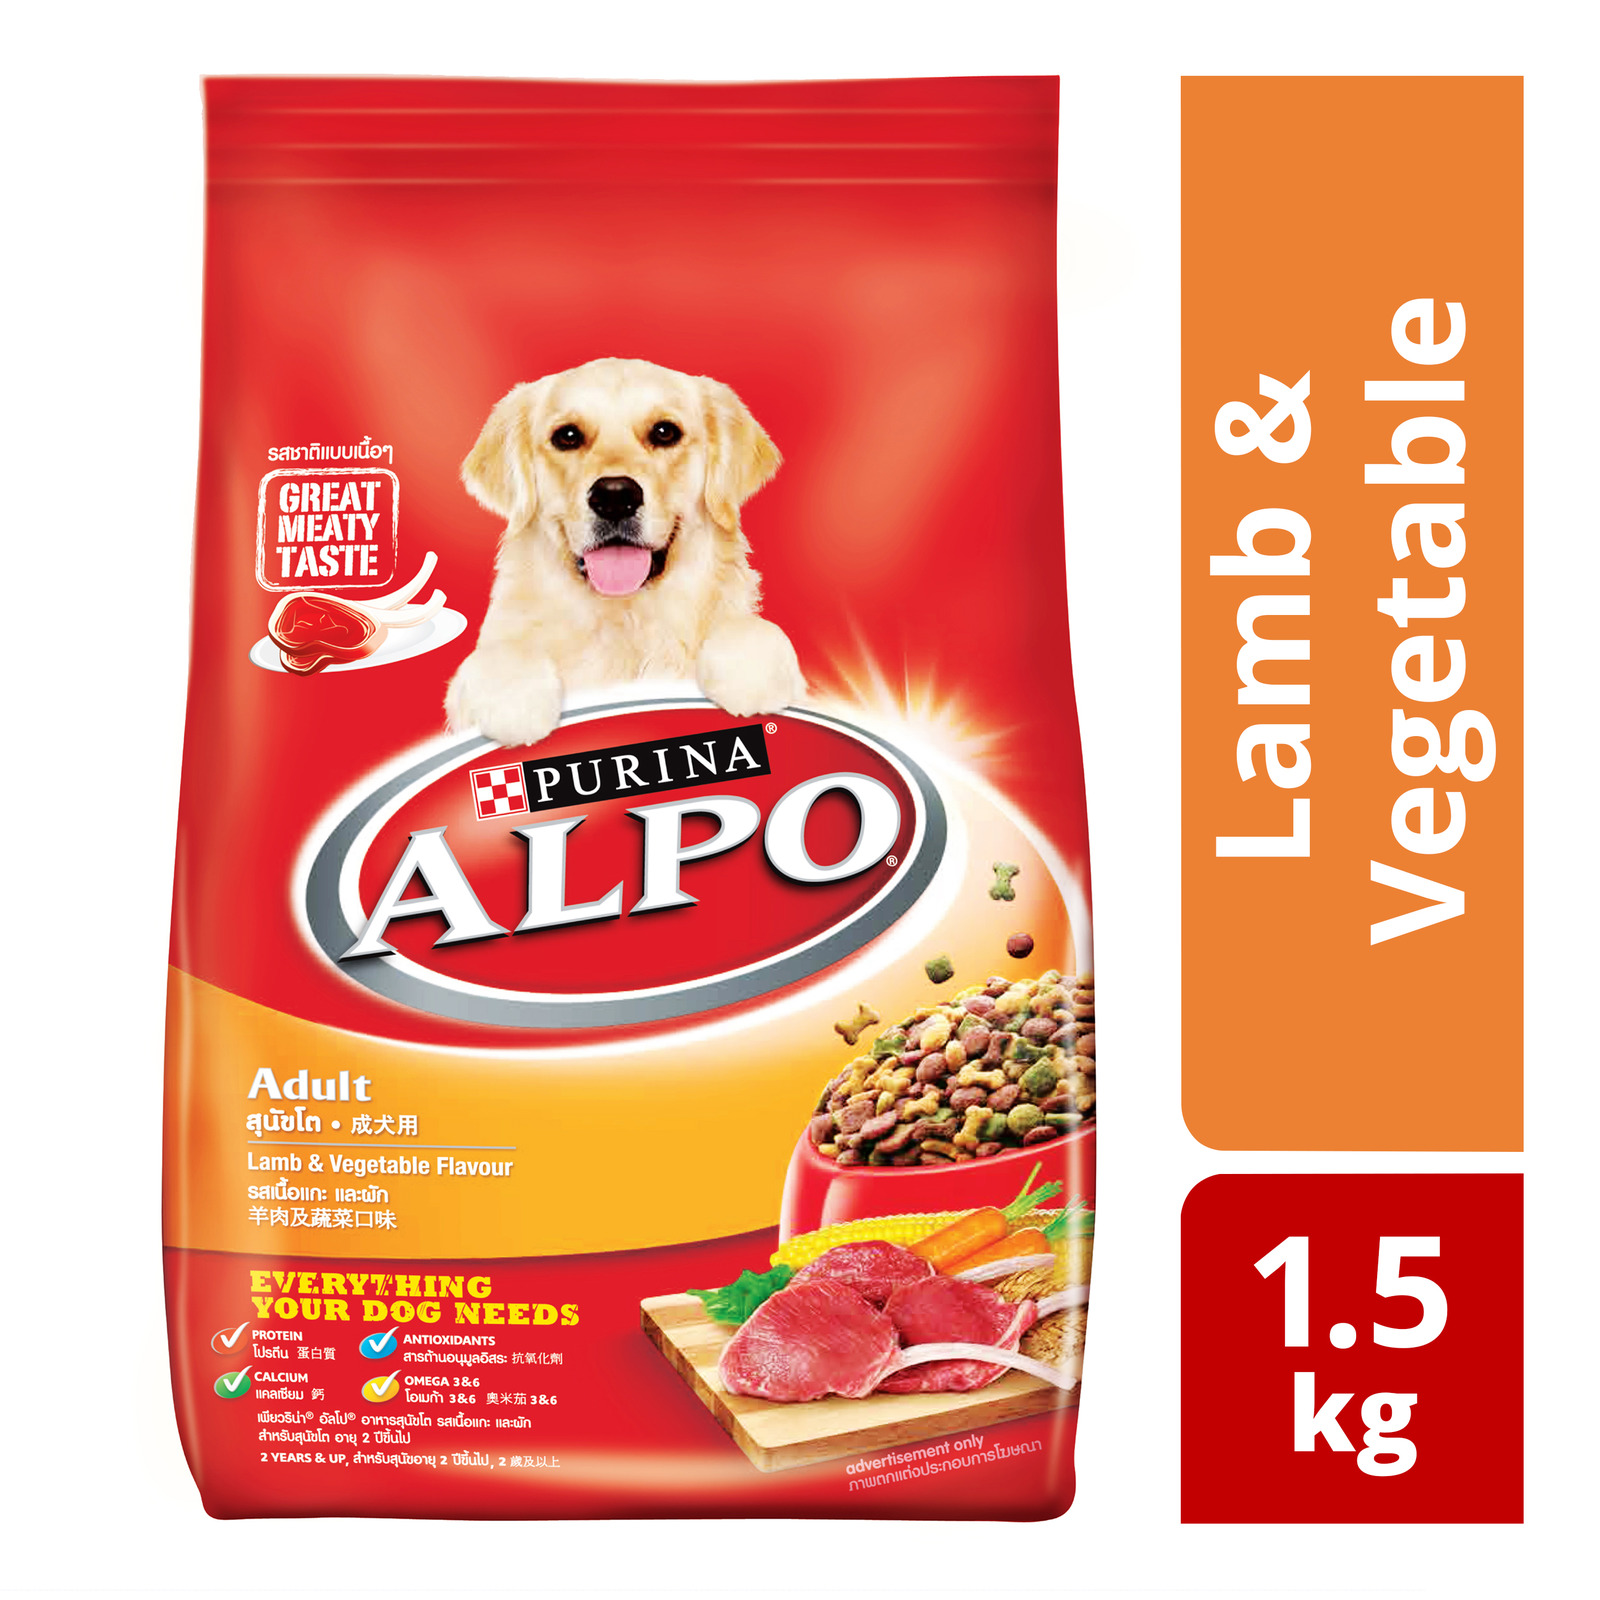 Purina Alpo Adult Dog Food - Lamb & Vegetable